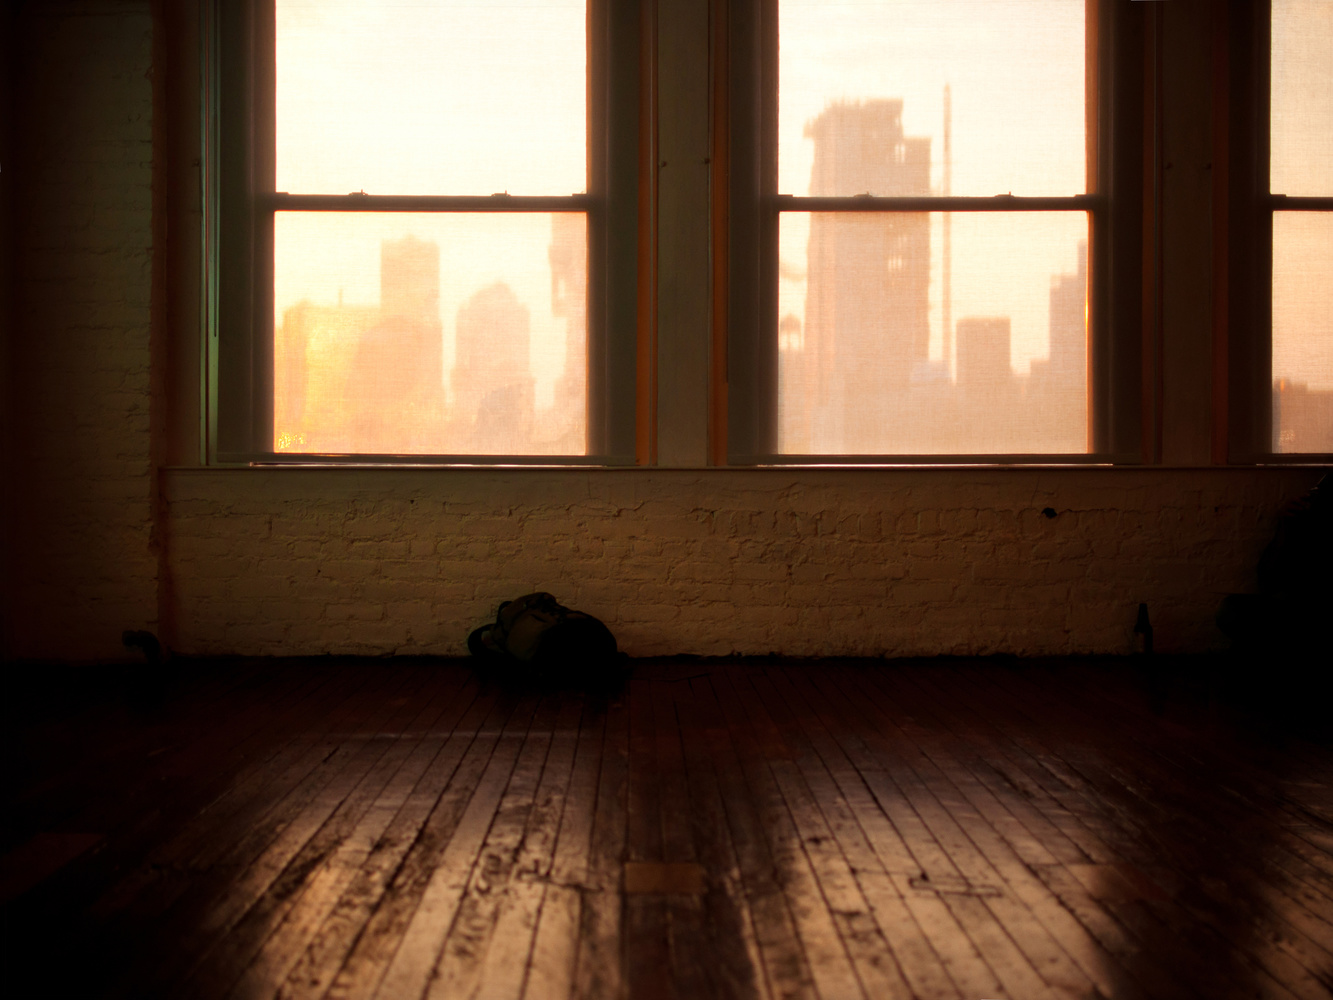 Untitled (Chinatown window view) by Juno Morrow